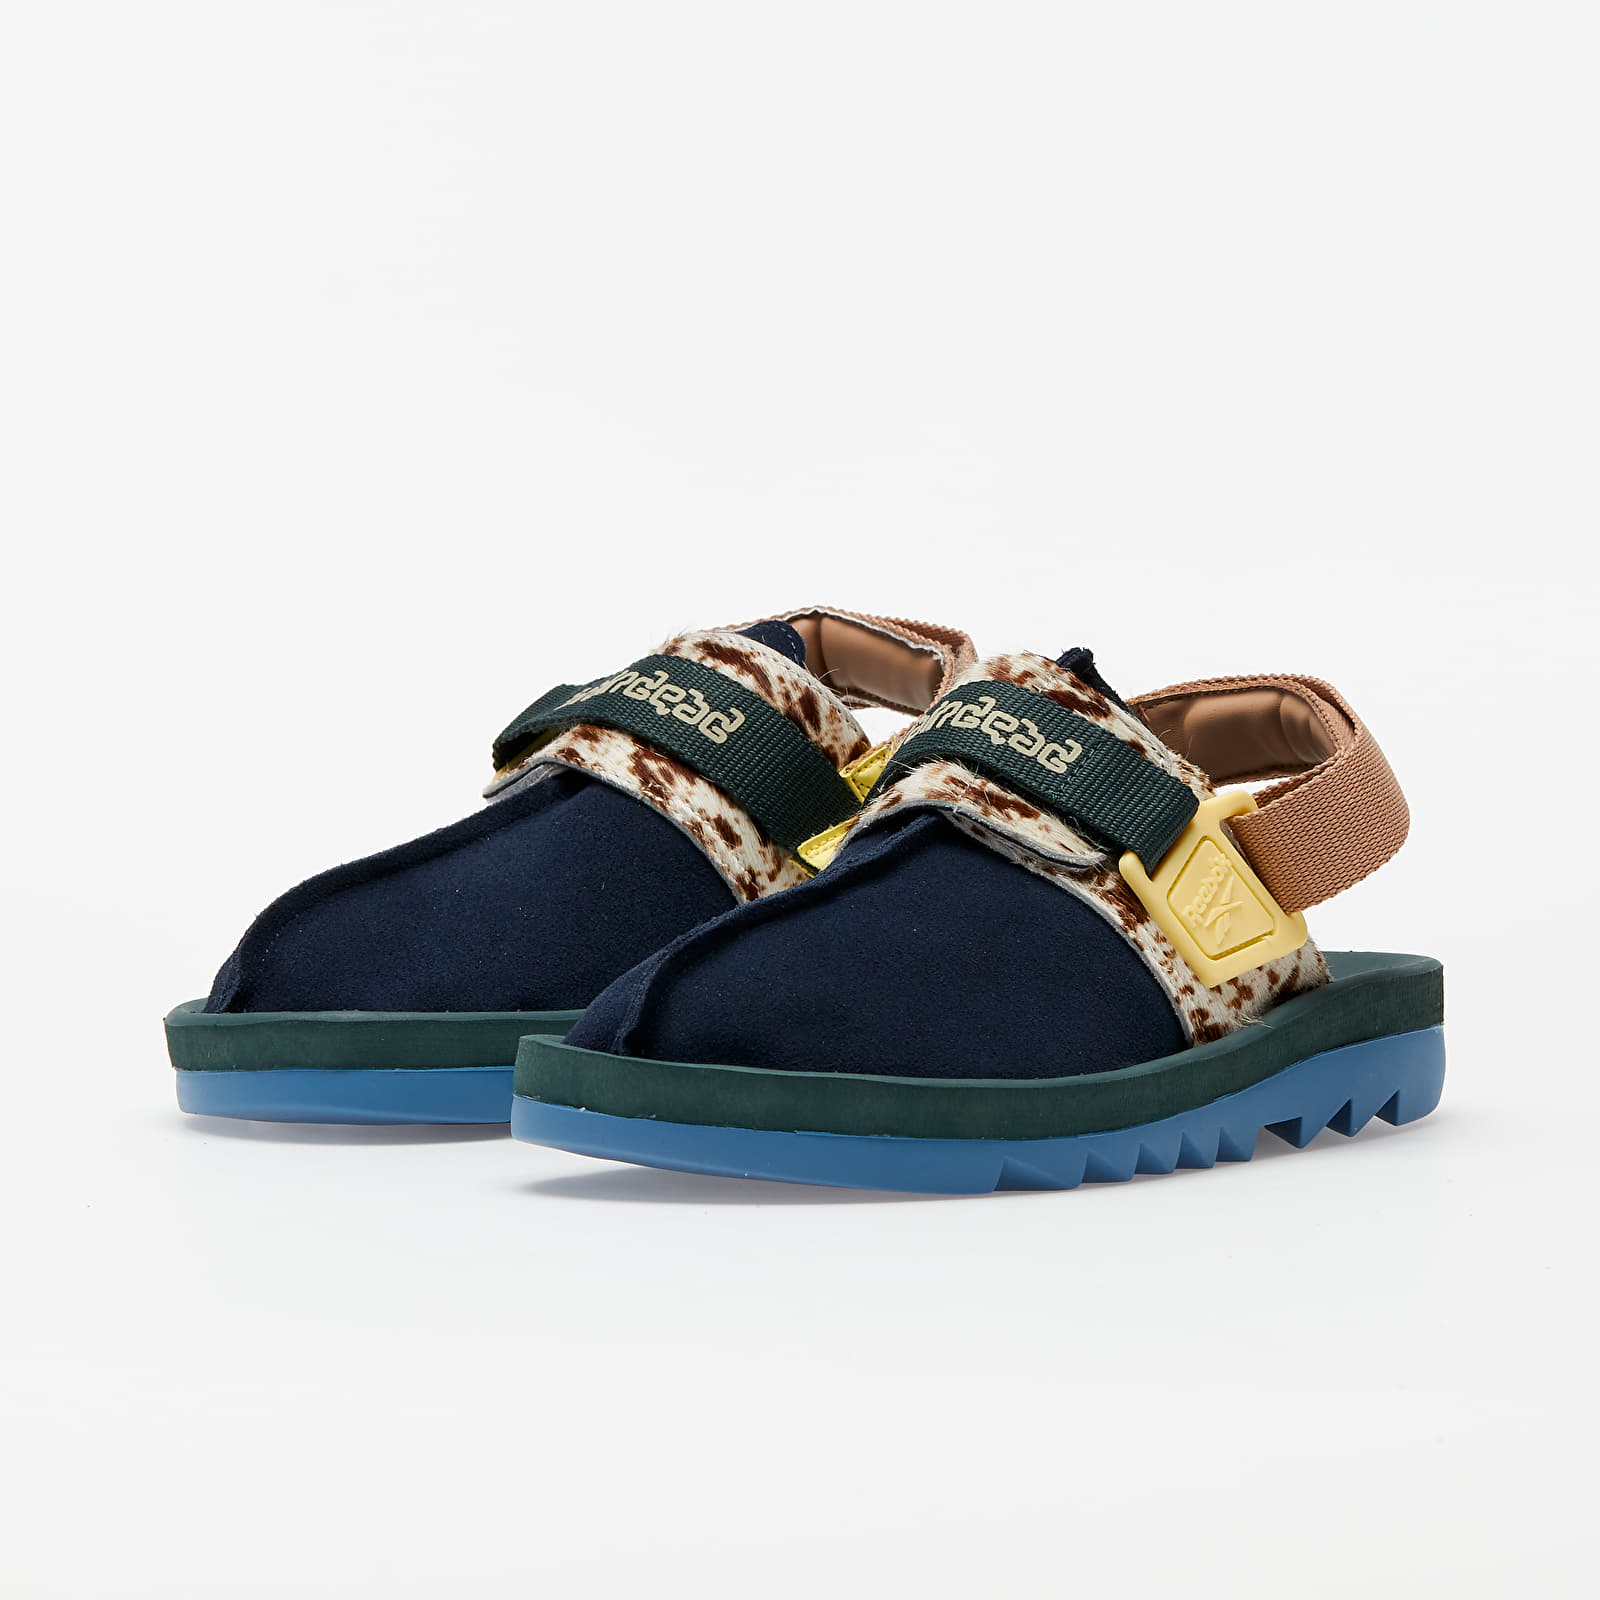 Reebok x Brain Dead Beatnik Collegiate Navy/ Ivy Green/ Shade Green, Blue